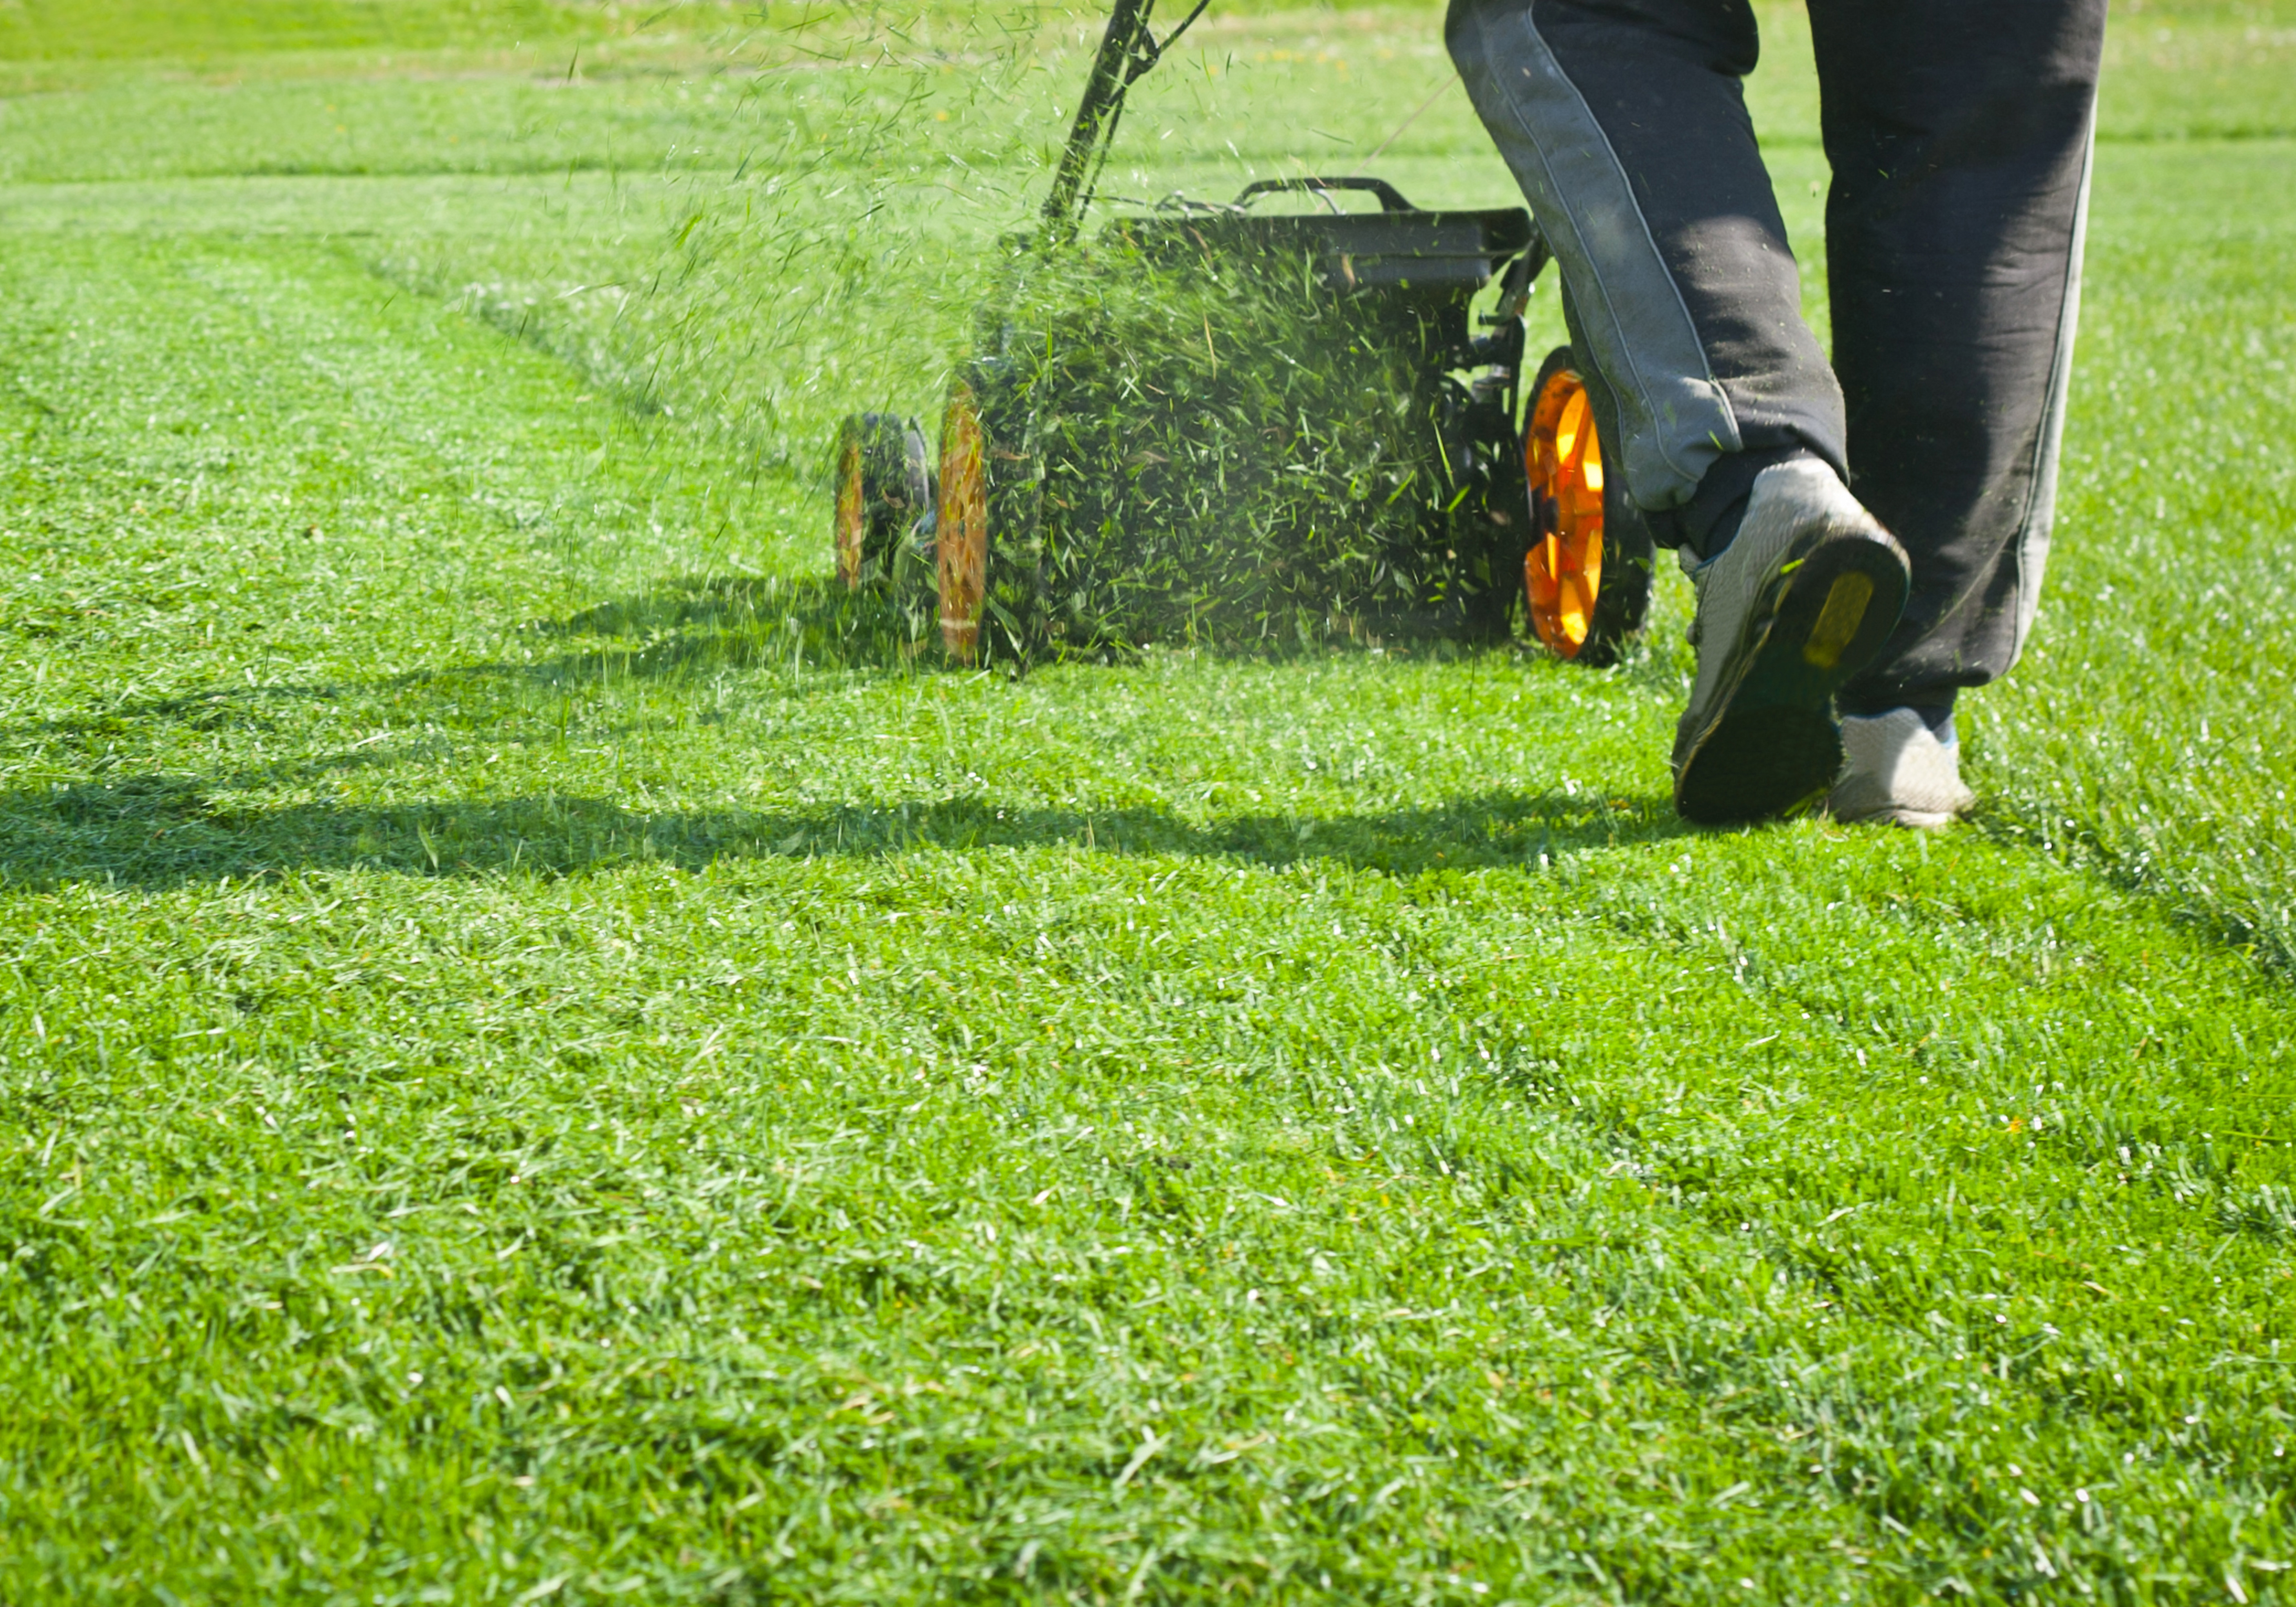 5 basic lawn maintenance tips everyone should know